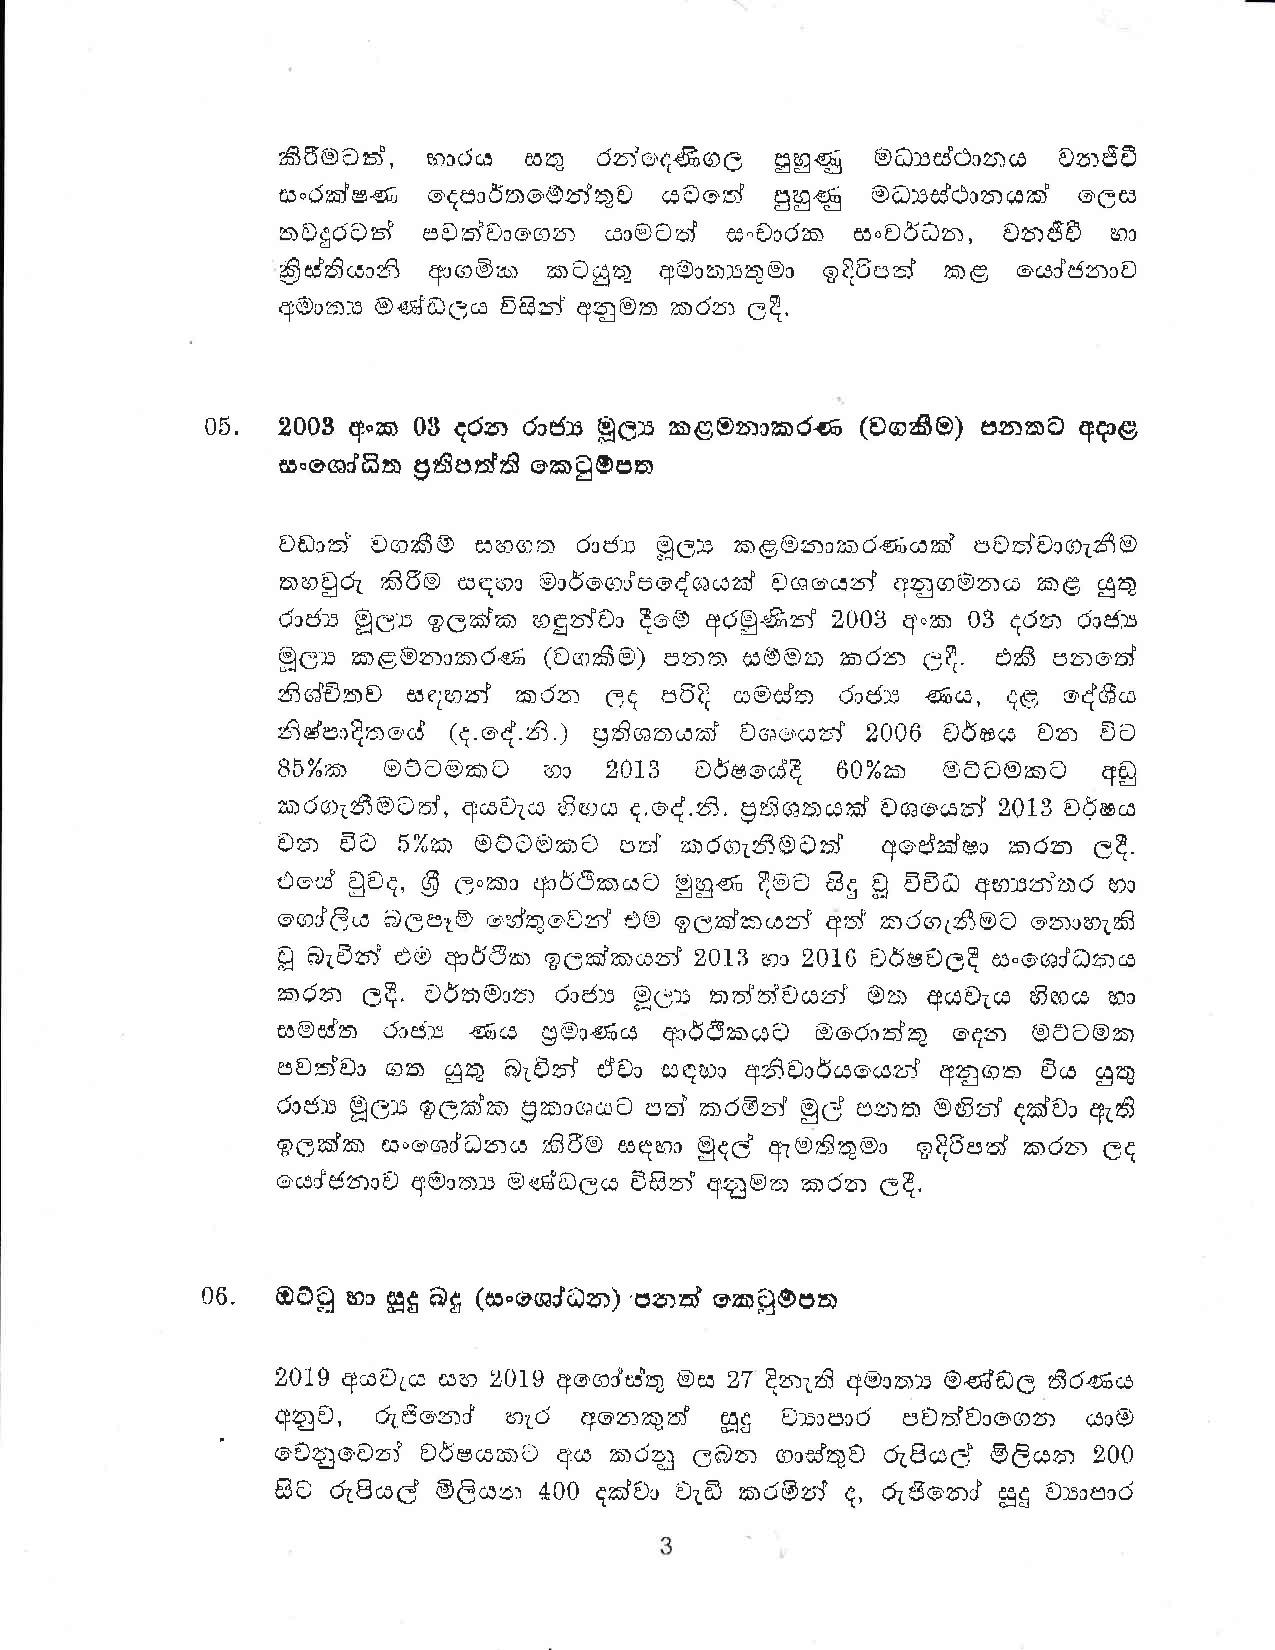 Cabinet Decision on 15.10.2019 page 003